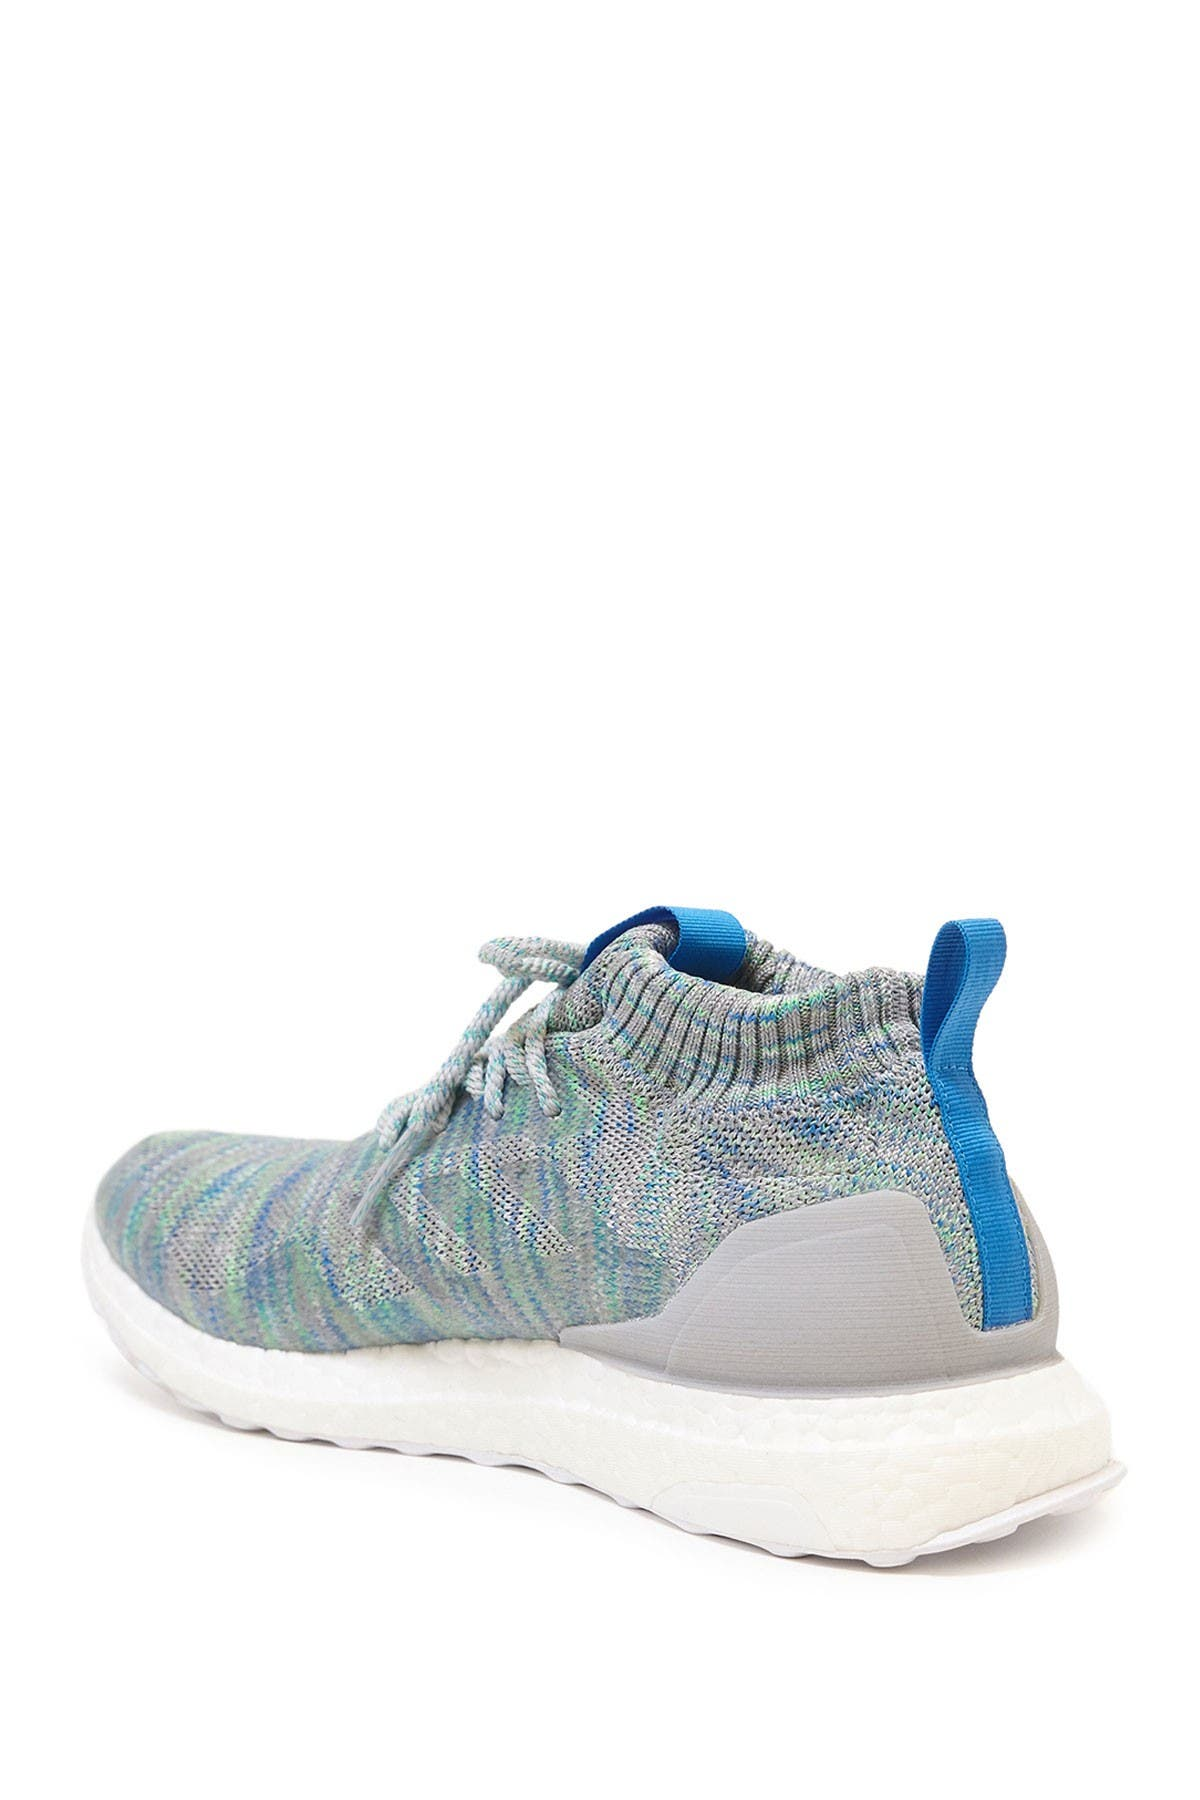 Image of adidas Ultra Boost Mid Sneakers